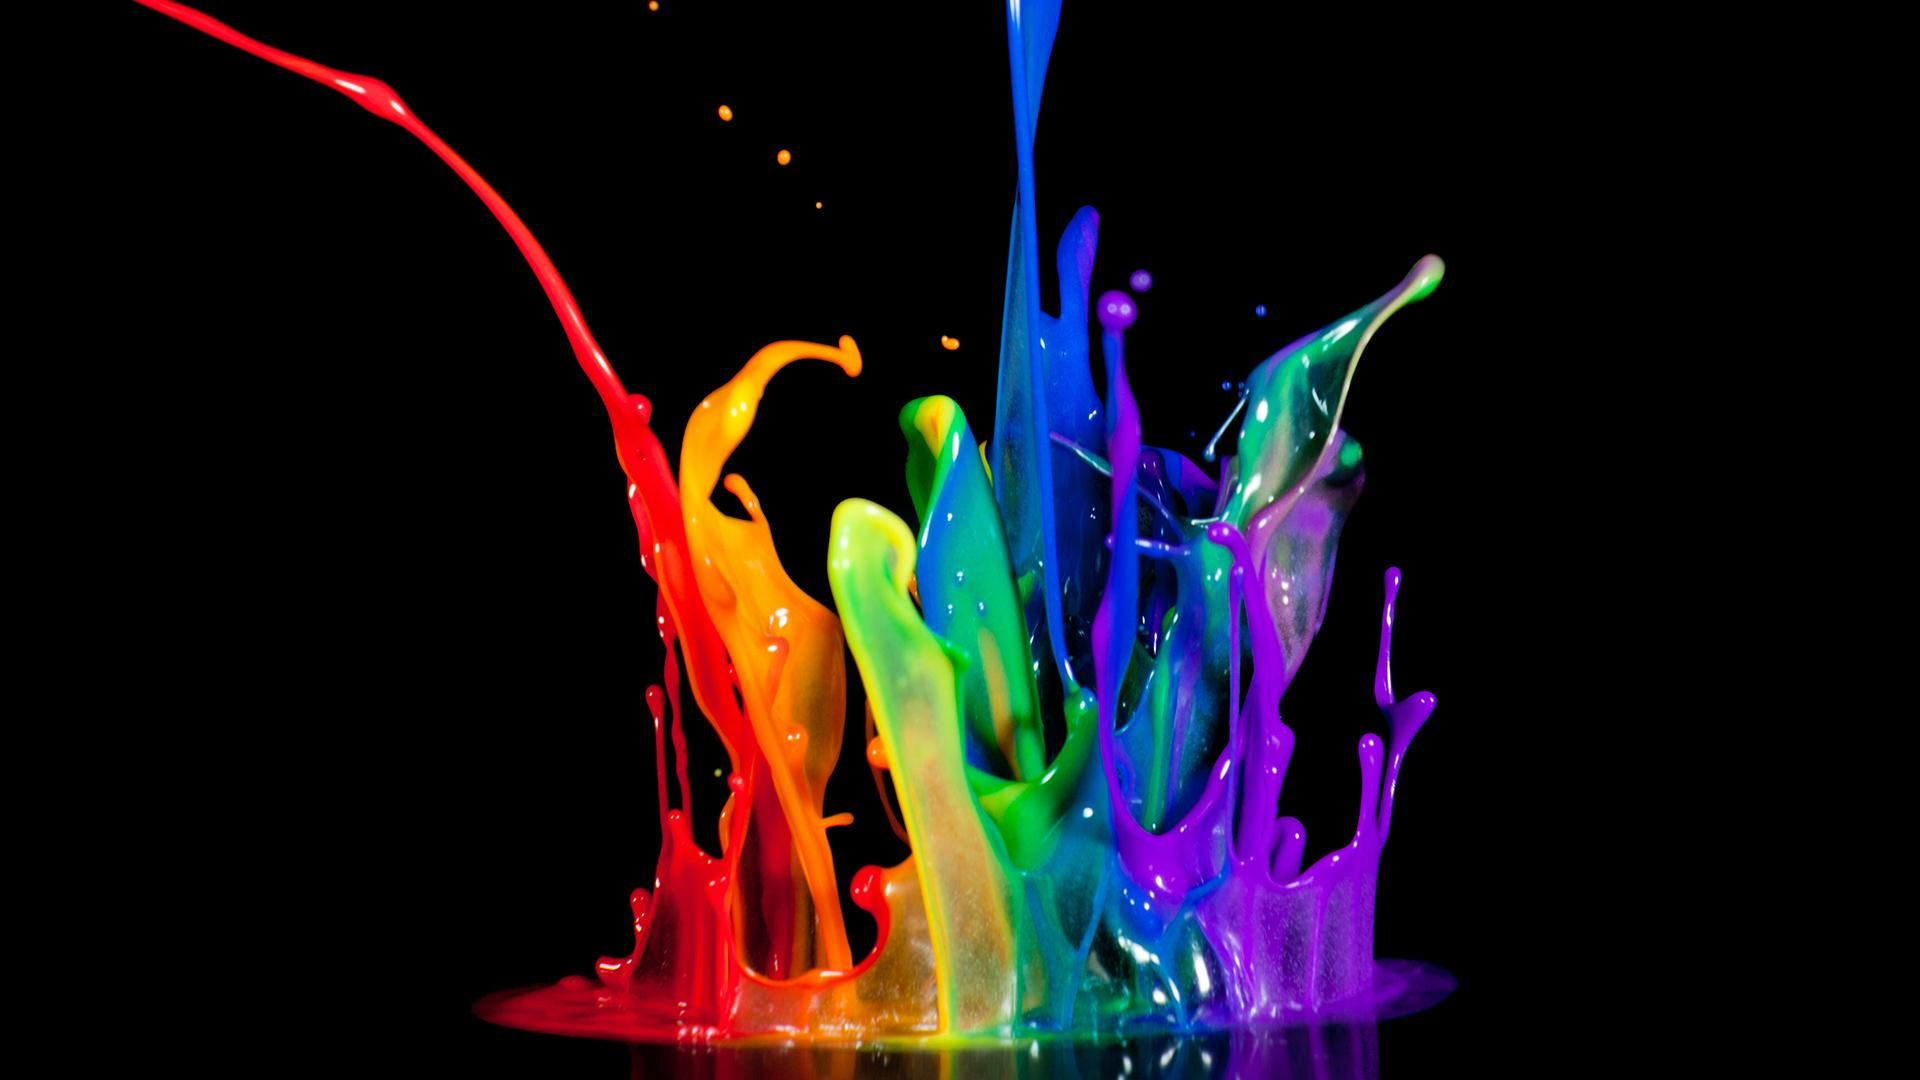 Hd Wallpaper Abstract Colorful Cool Is An Hd Wallpaper Posted In